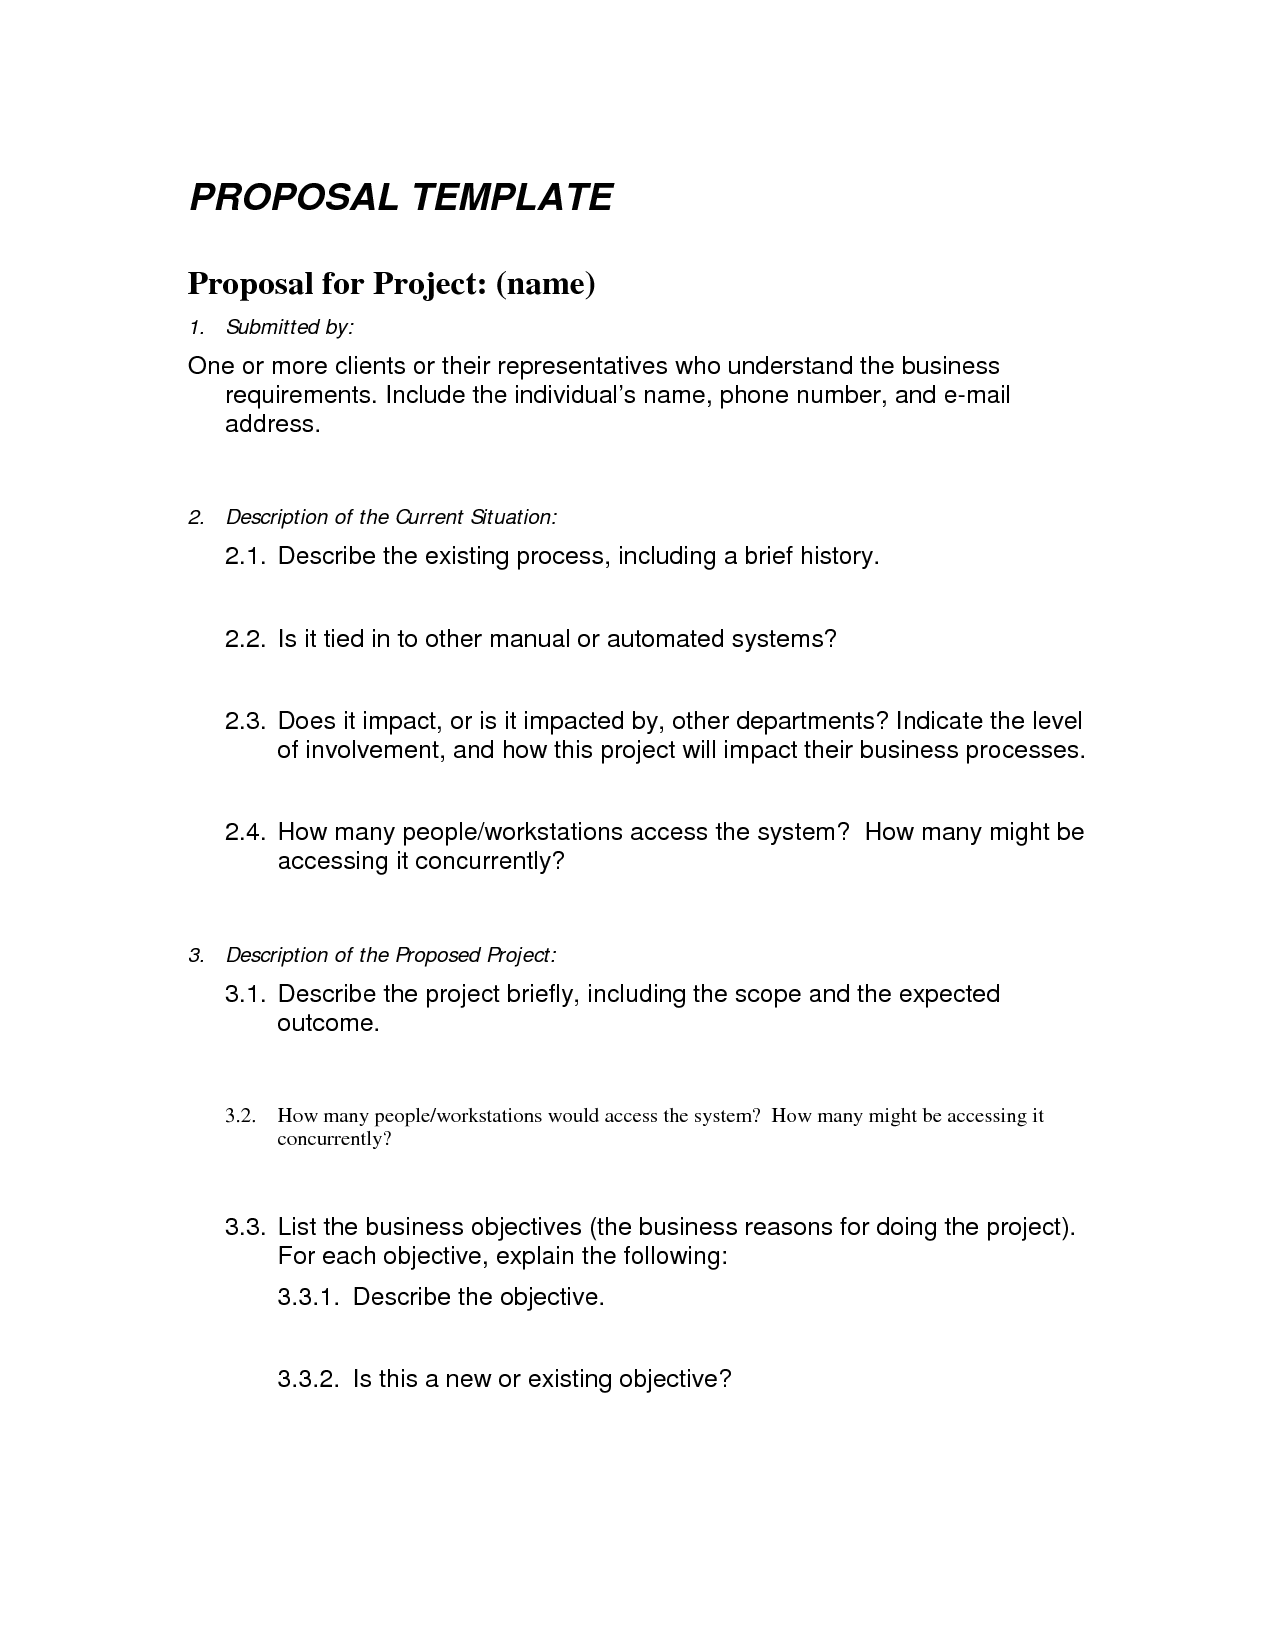 download proposal template word